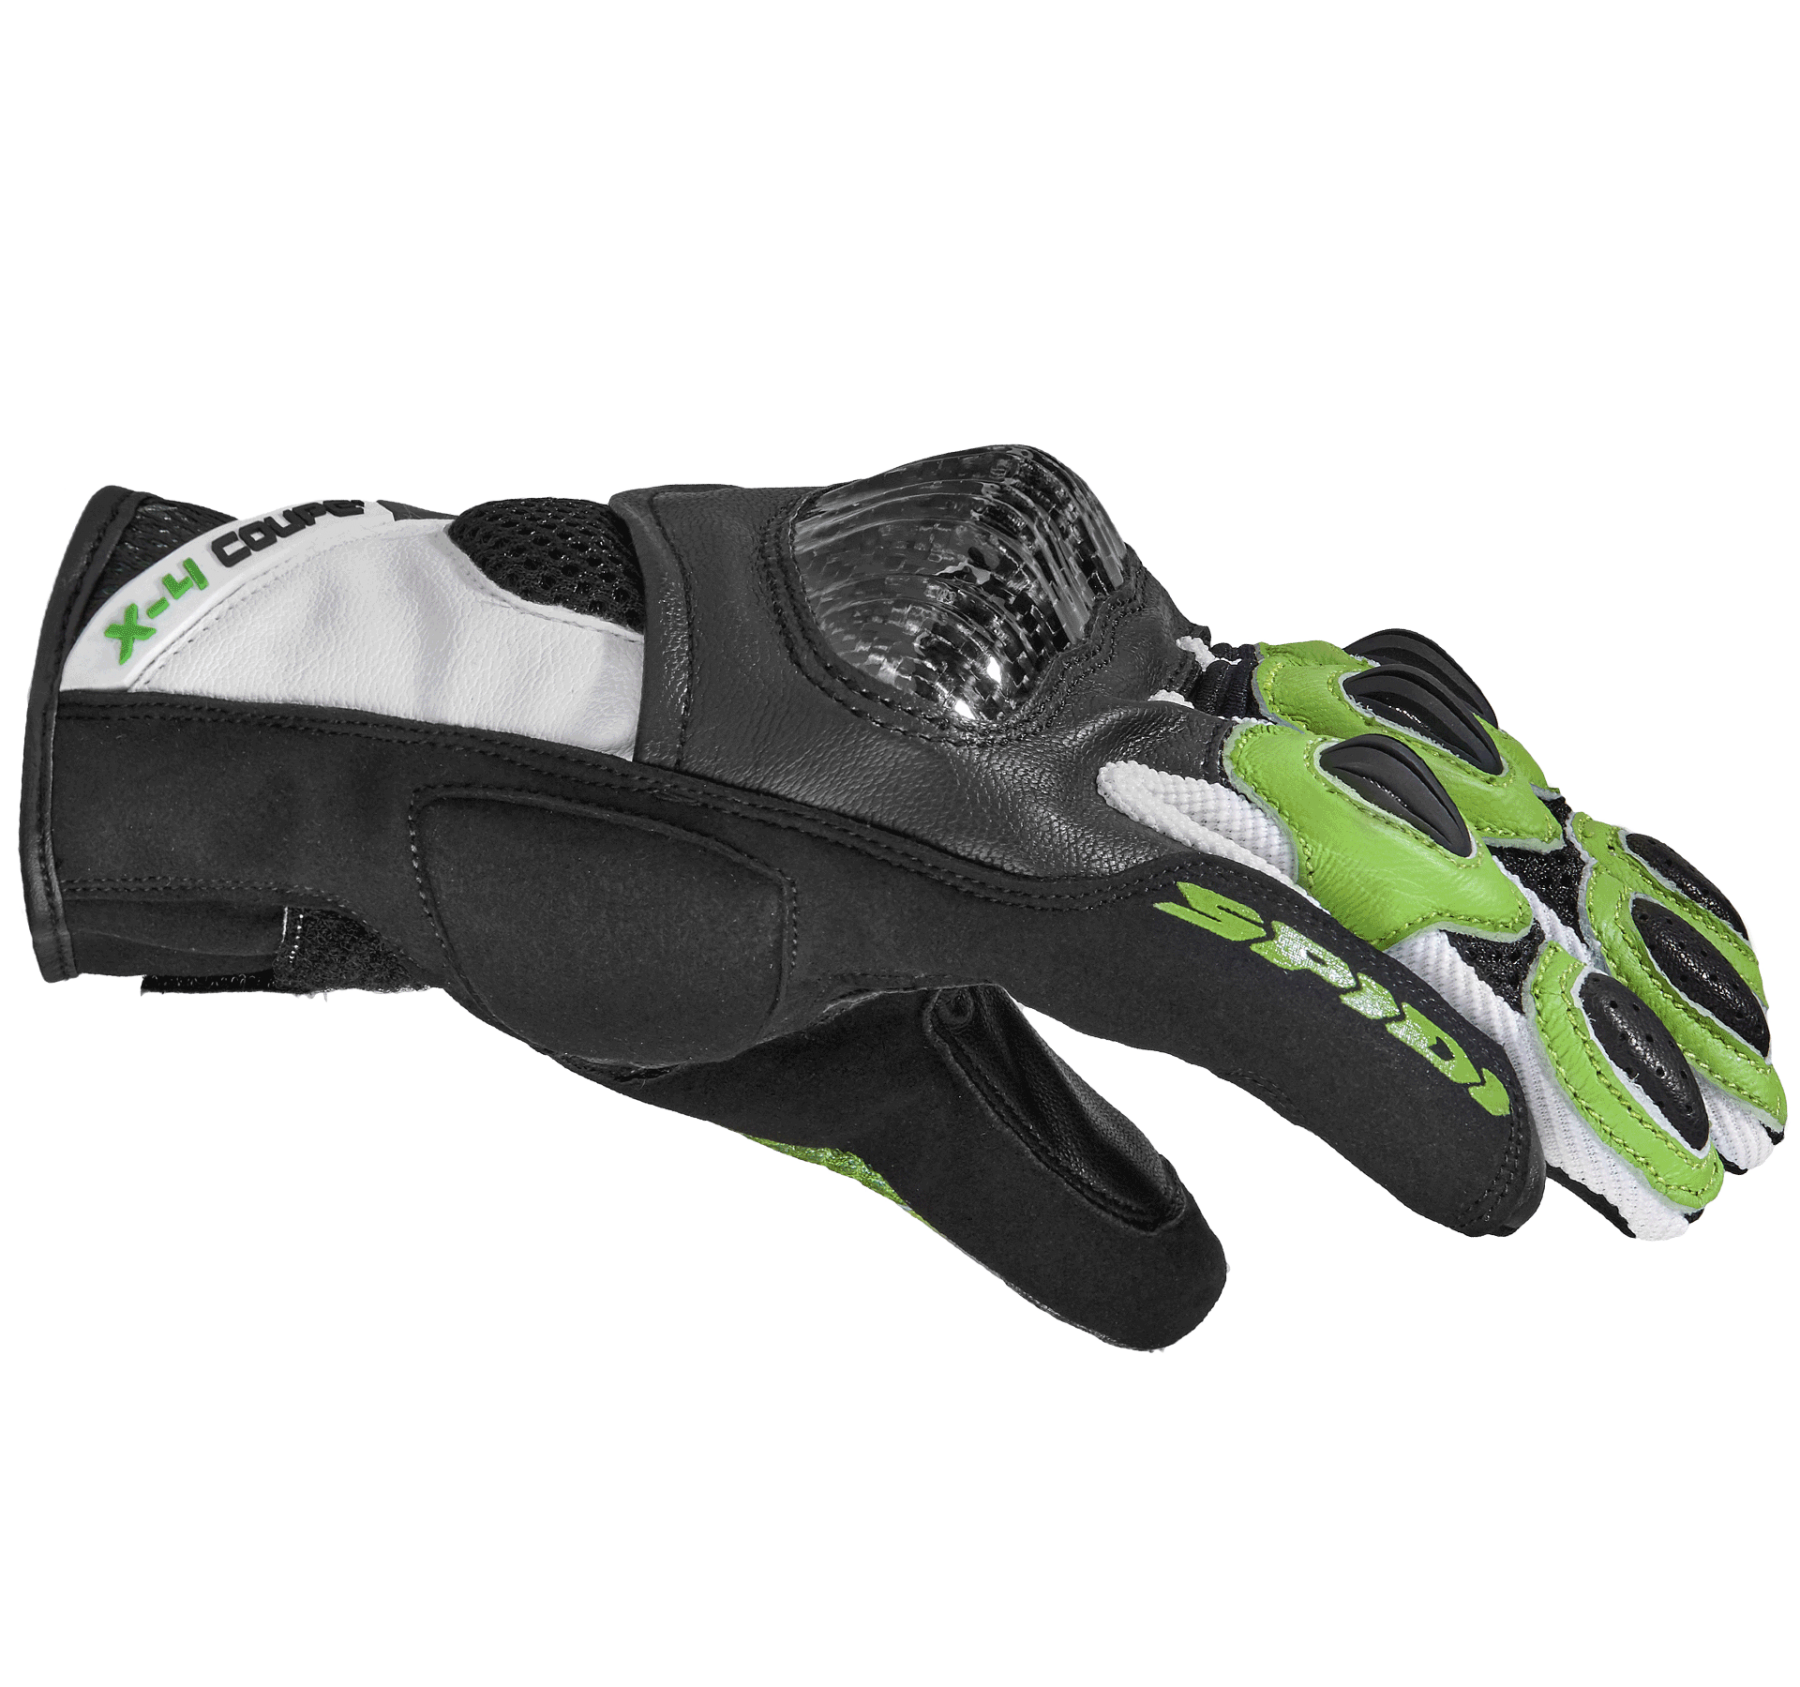 Spidi X4 Coupé Gloves -  Black / White / Green